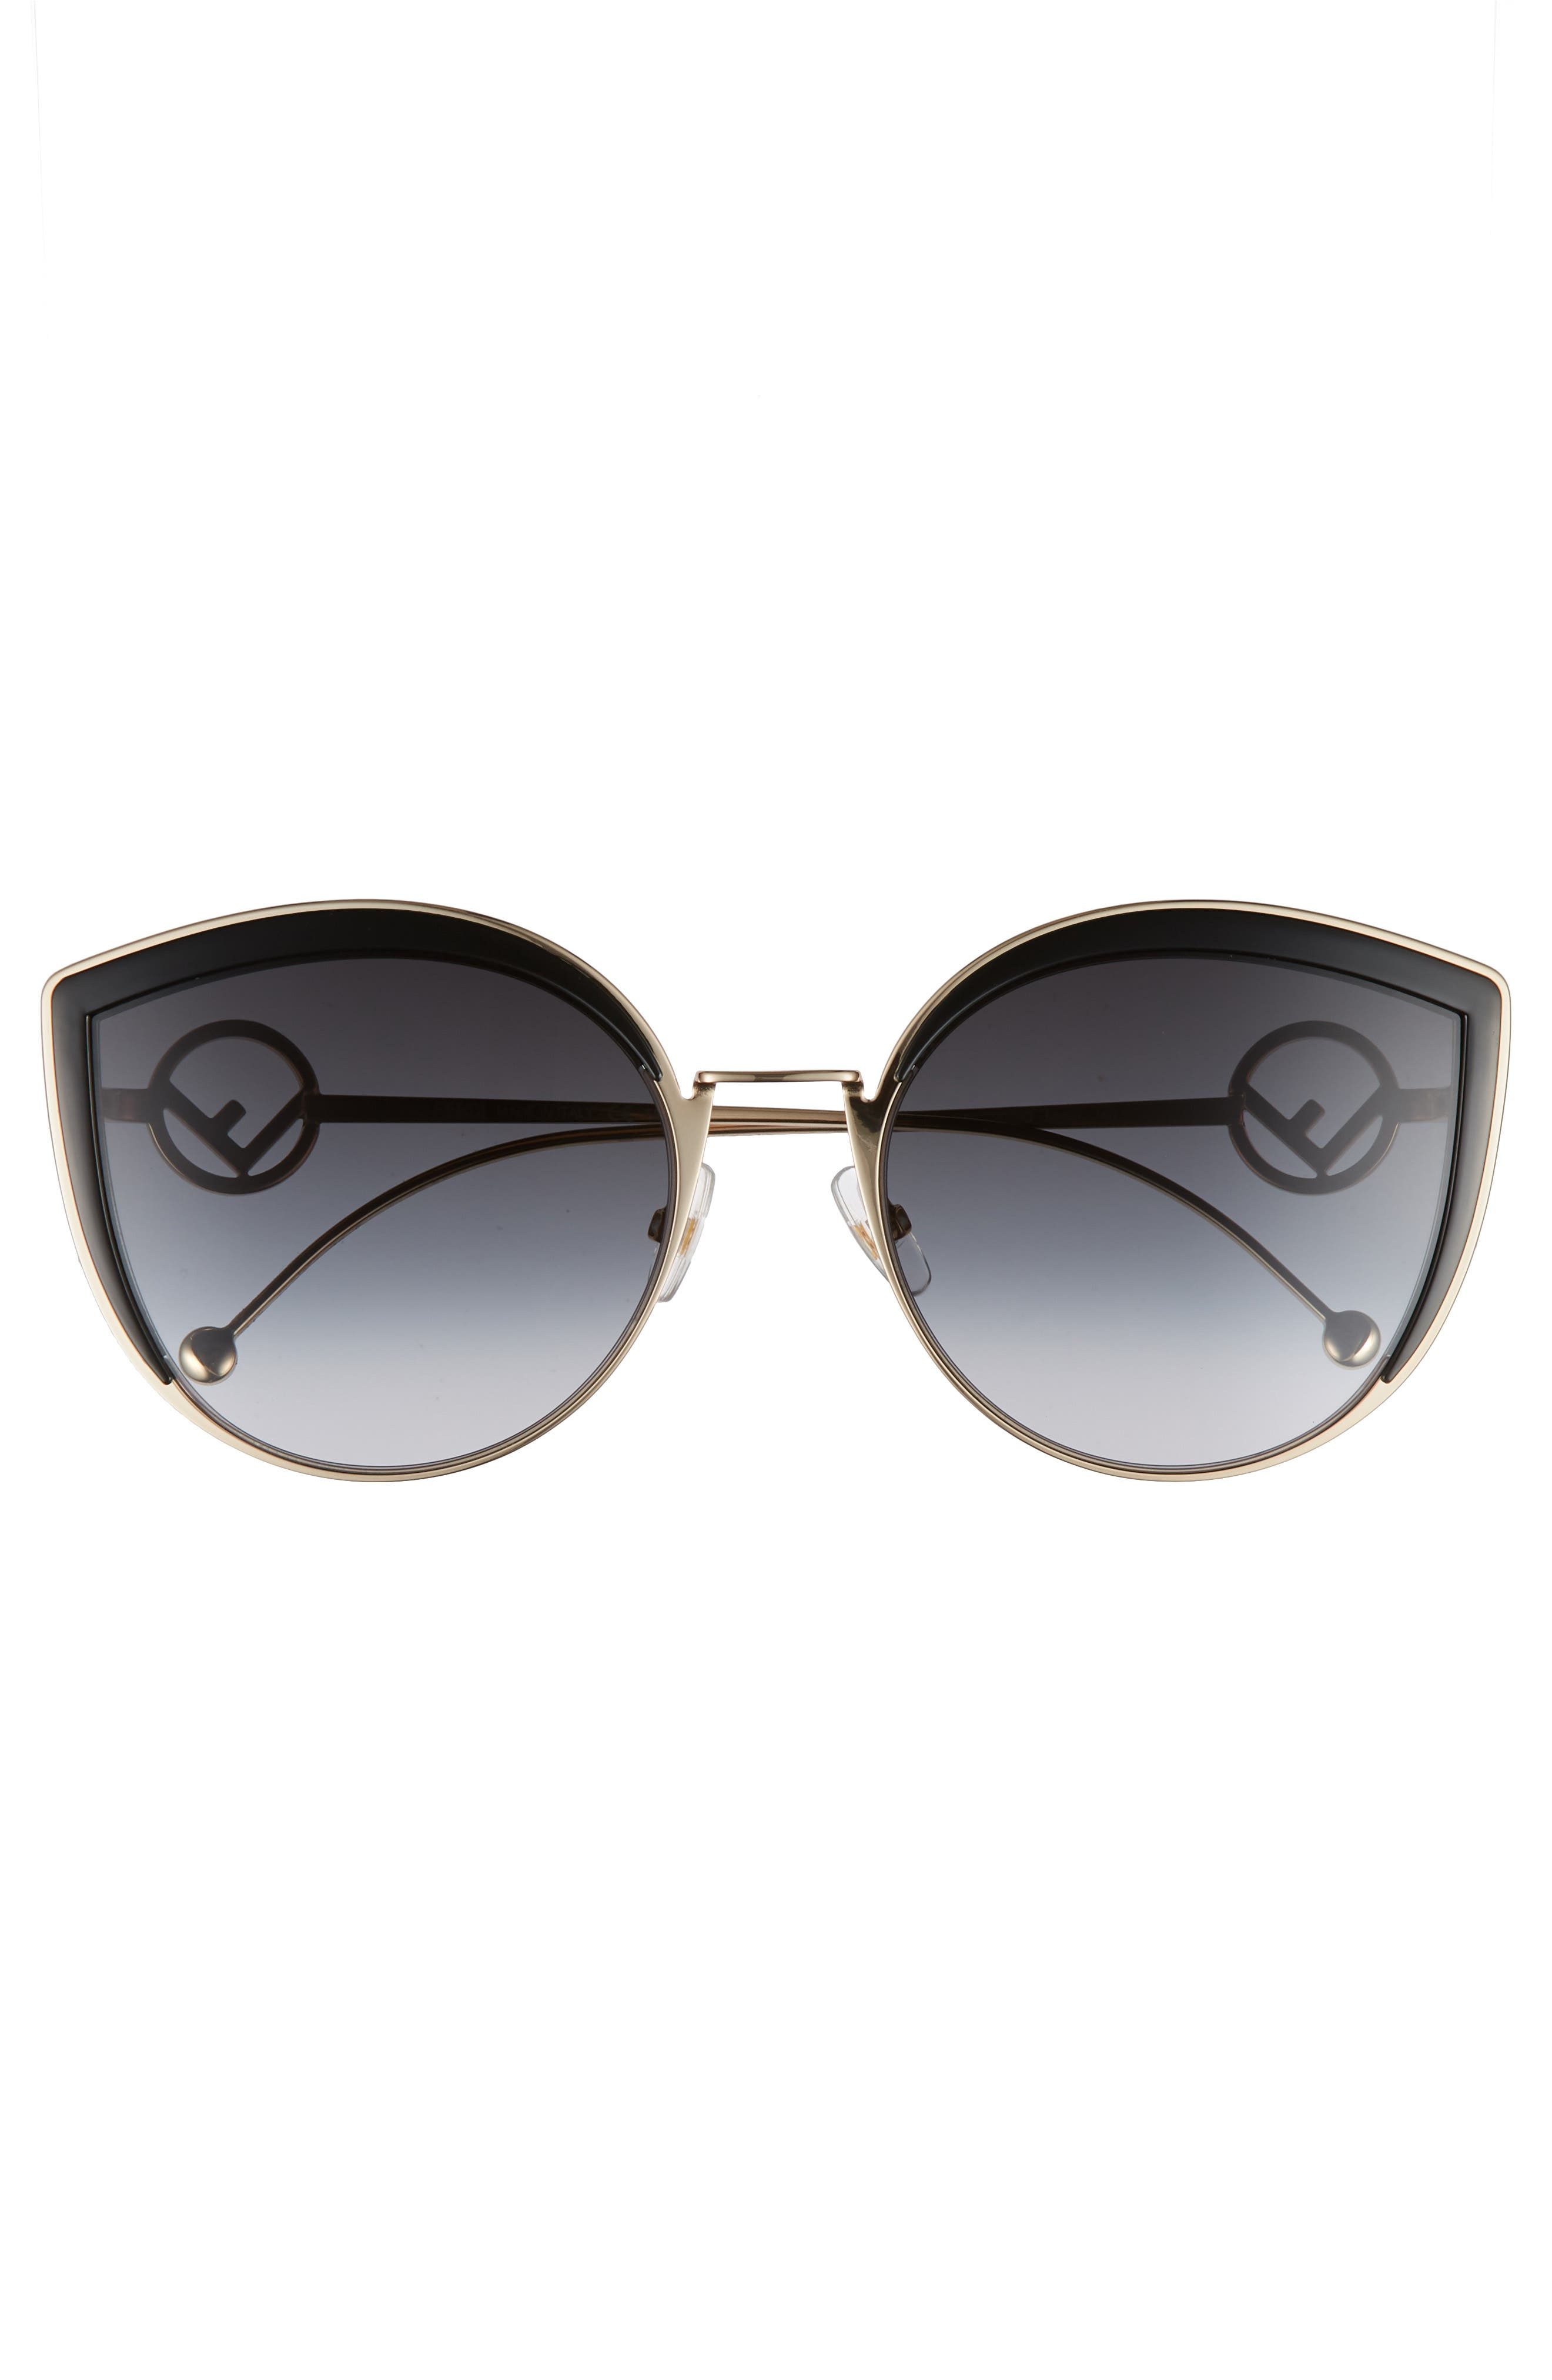 58mm Metal Butterfly Sunglasses,                             Alternate thumbnail 3, color,                             001